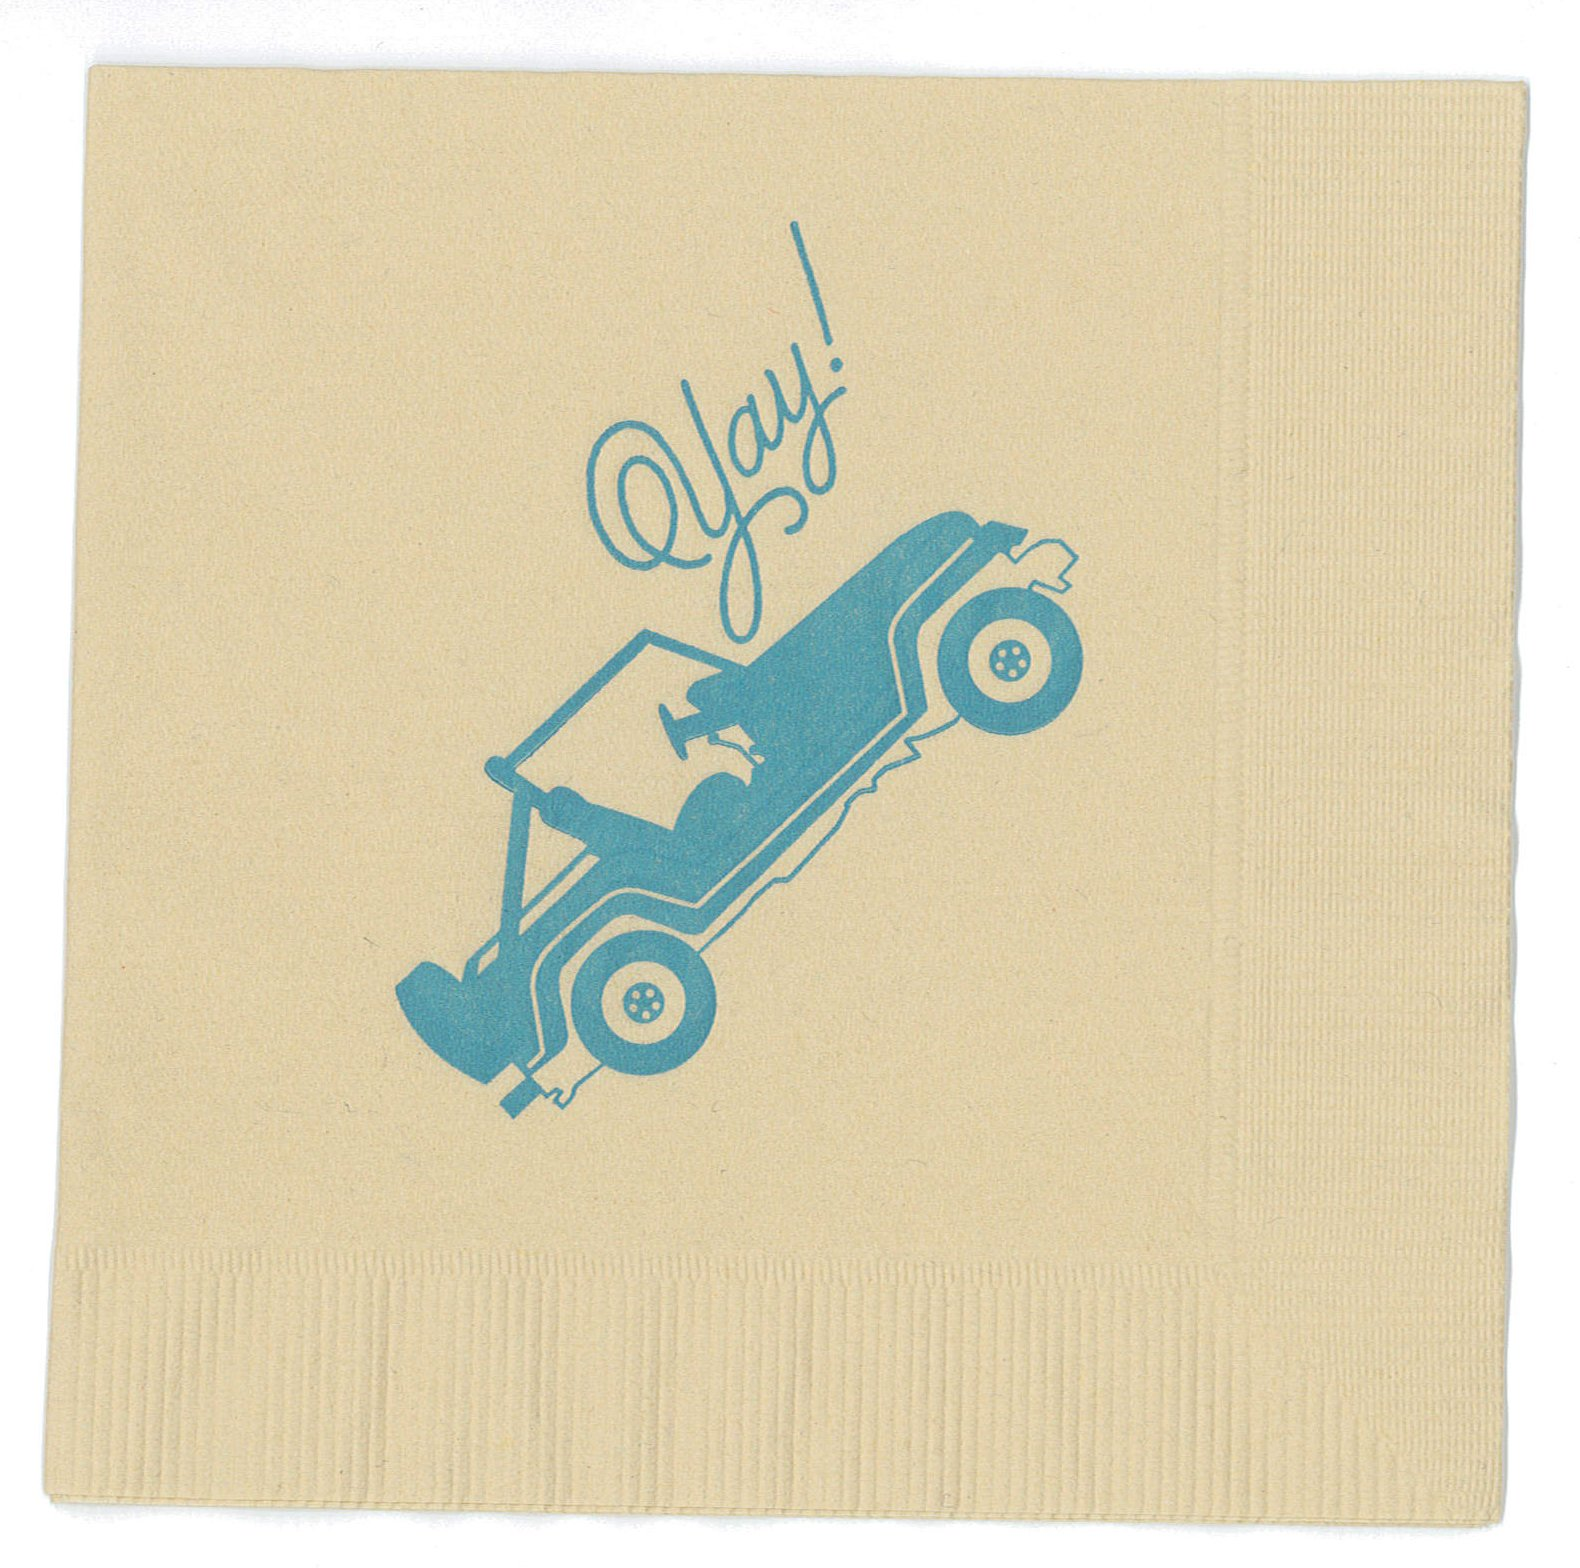 Jeep Party Napkins made in America by REVEL & Co by REVEL & Co